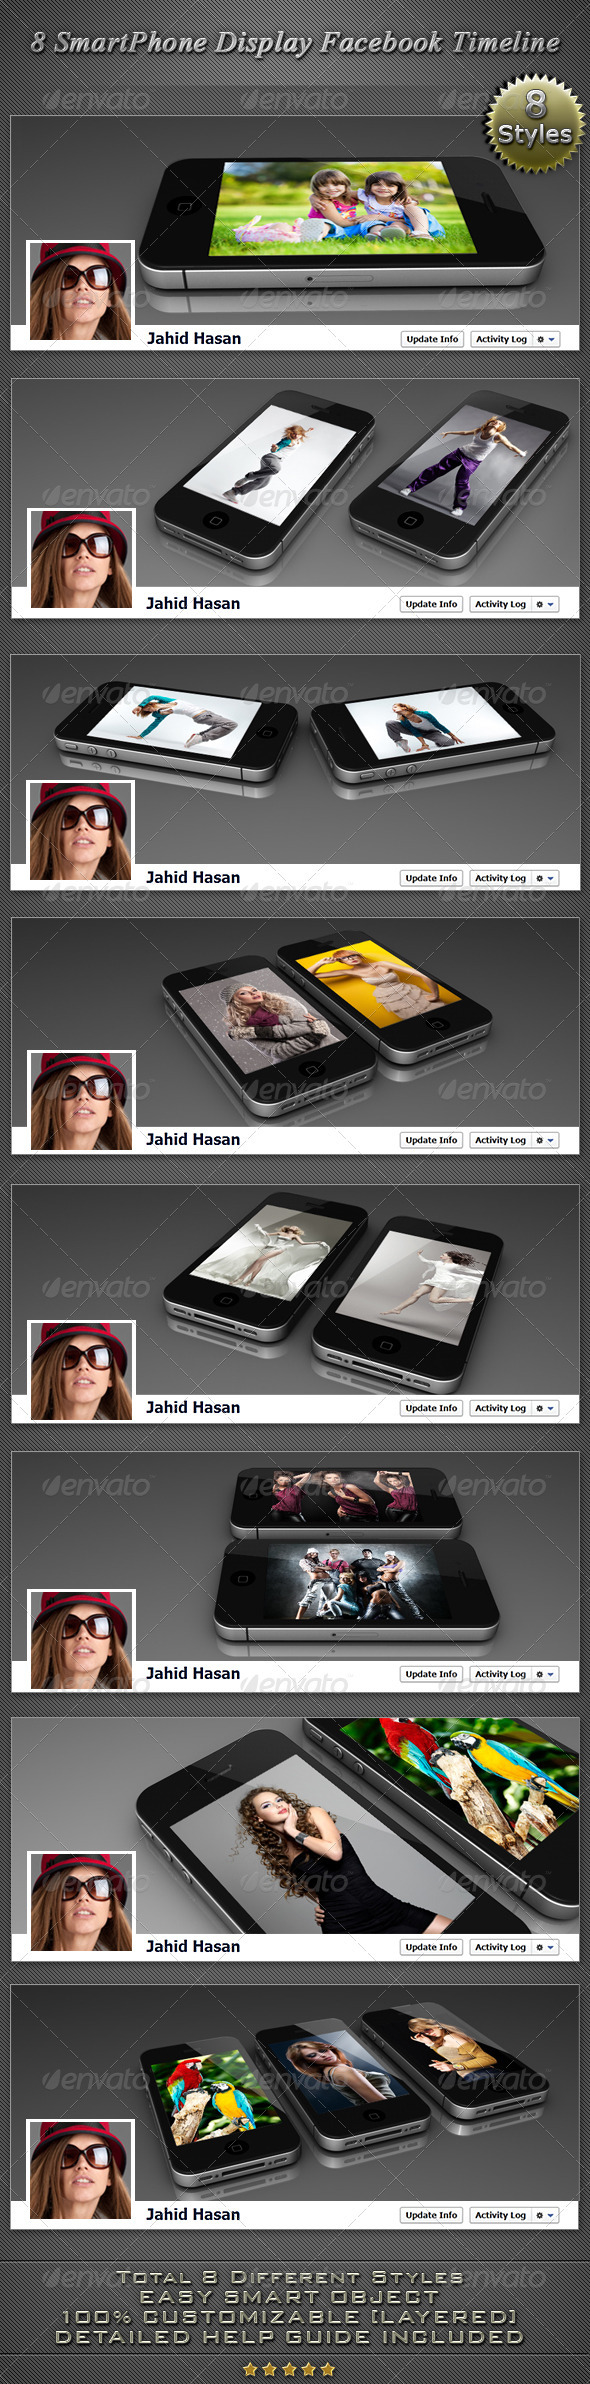 GraphicRiver 8 Smartphone Display Facebook timeline Covers 2879222